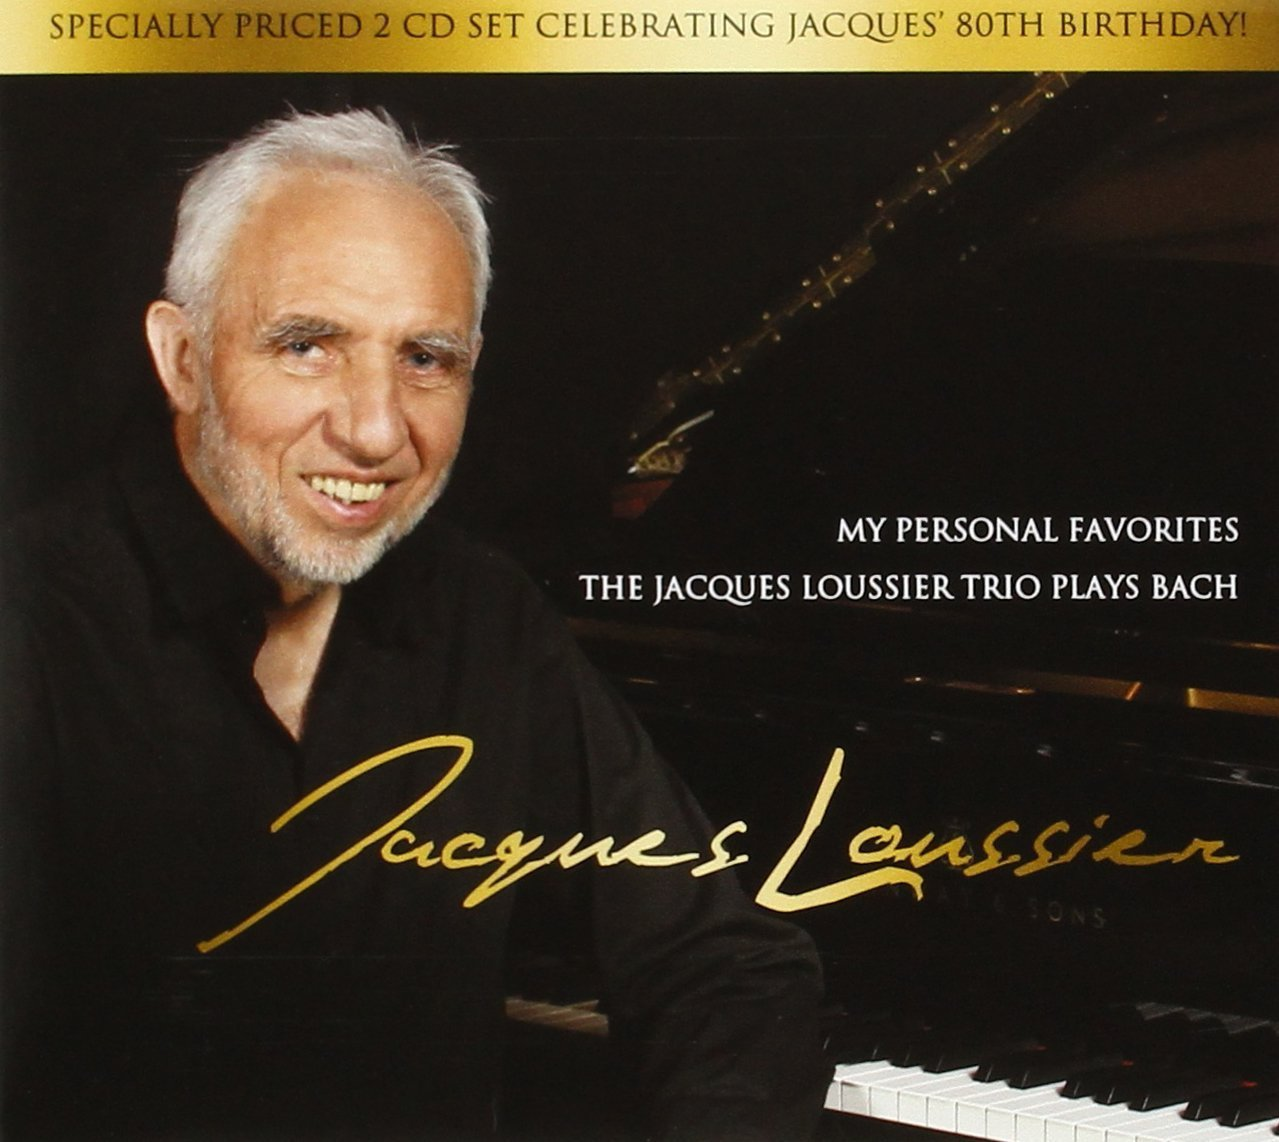 My personal favorites by jacques loussier   instrumental   2cd